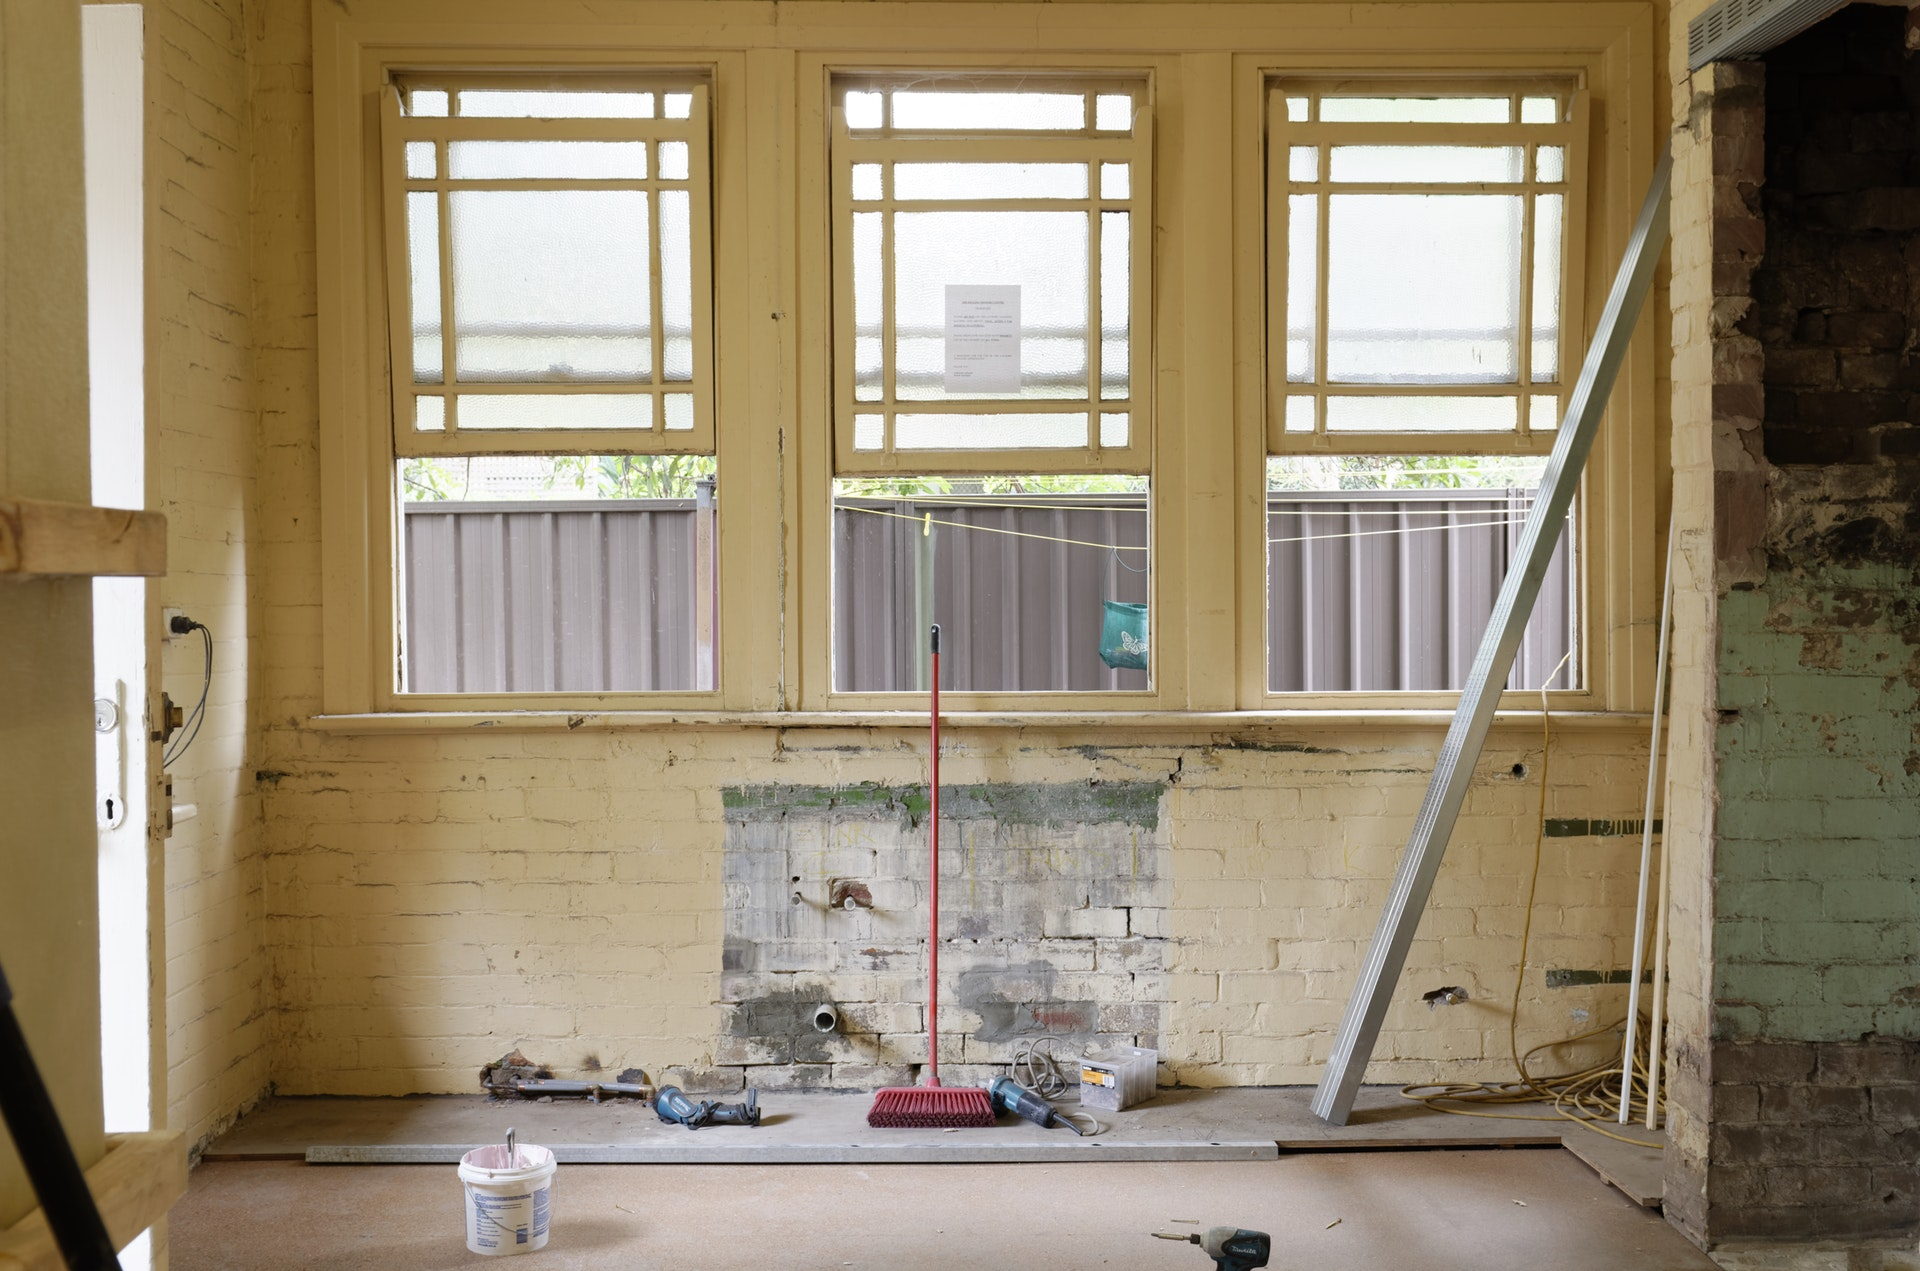 Home Renovations in a Strata Home: How to Avoid Unnecessary Problems